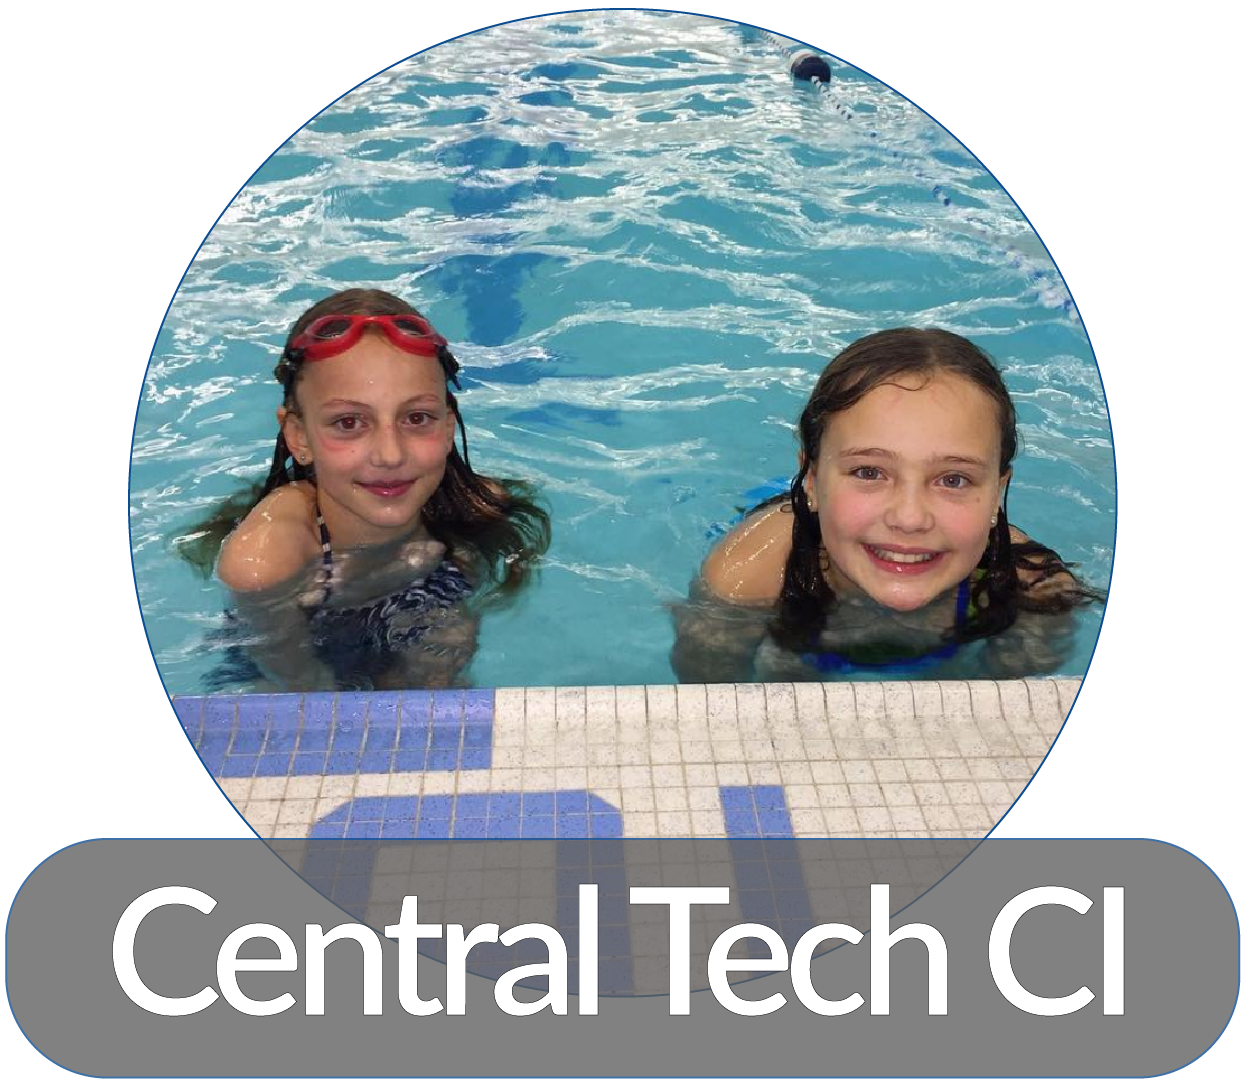 Central Tech Pool Location